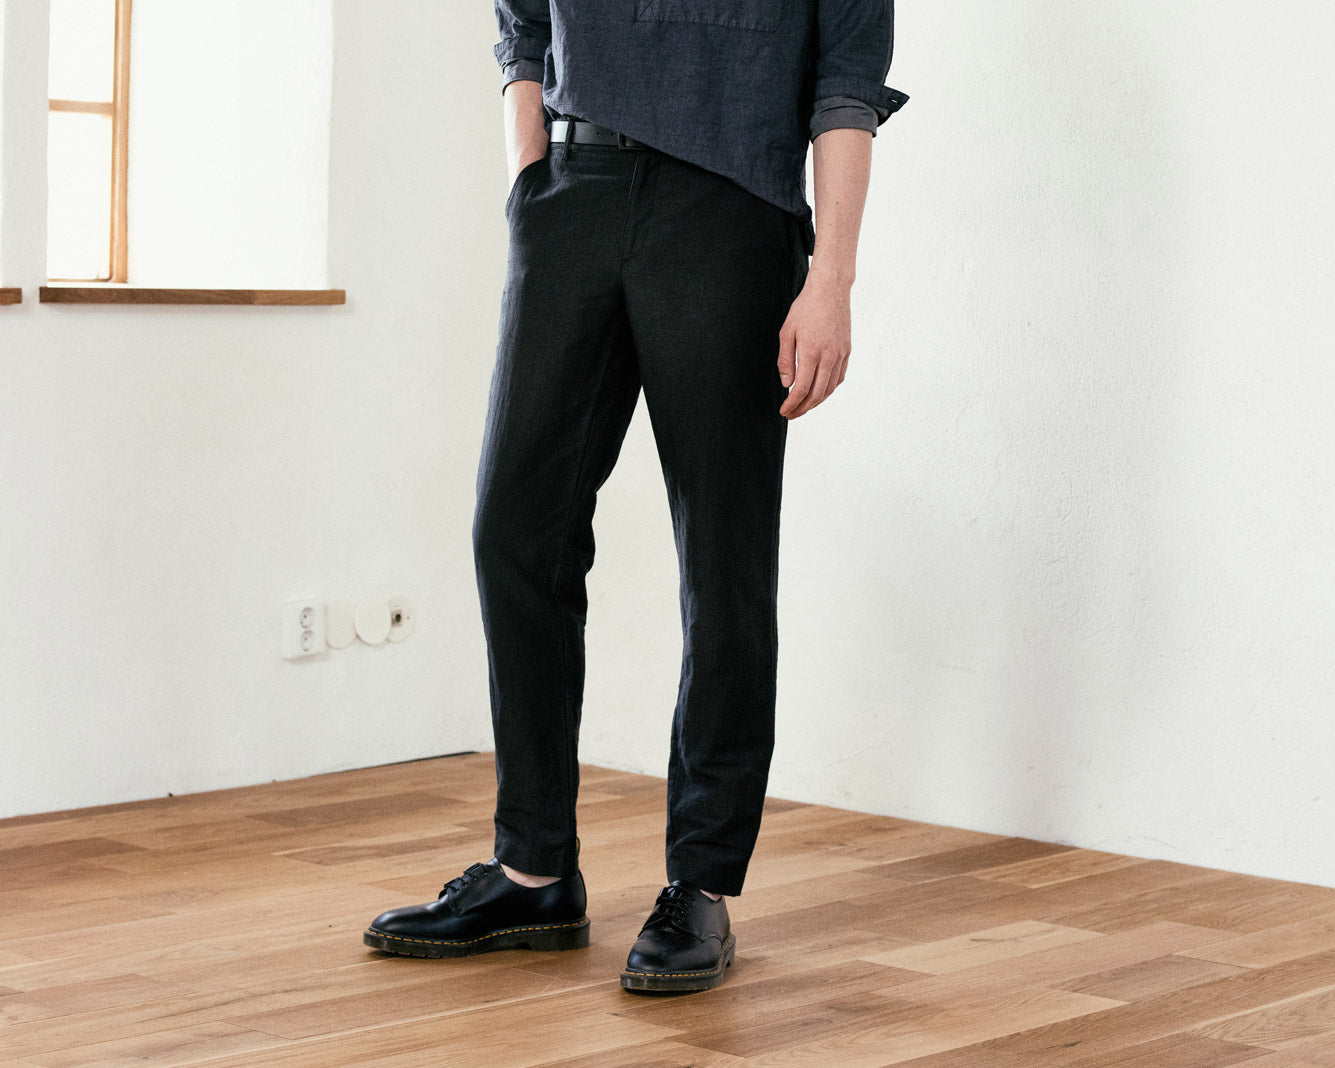 Injected Linen Pants - Fit